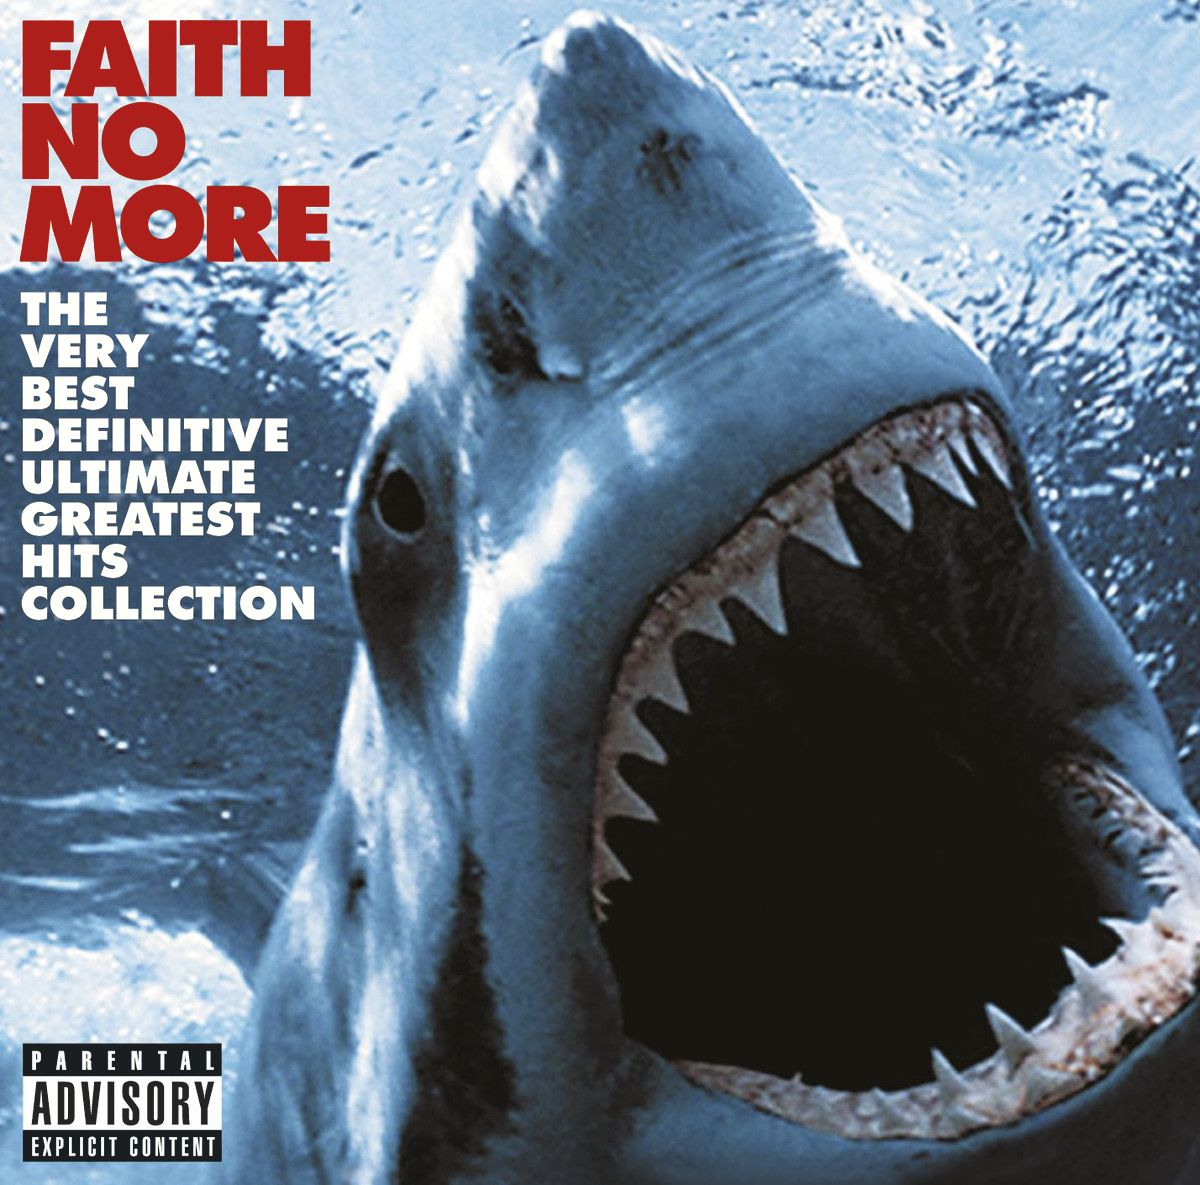 Faith No More - The Very Best Definitive Ultimate Greatest Hits Collection album cover